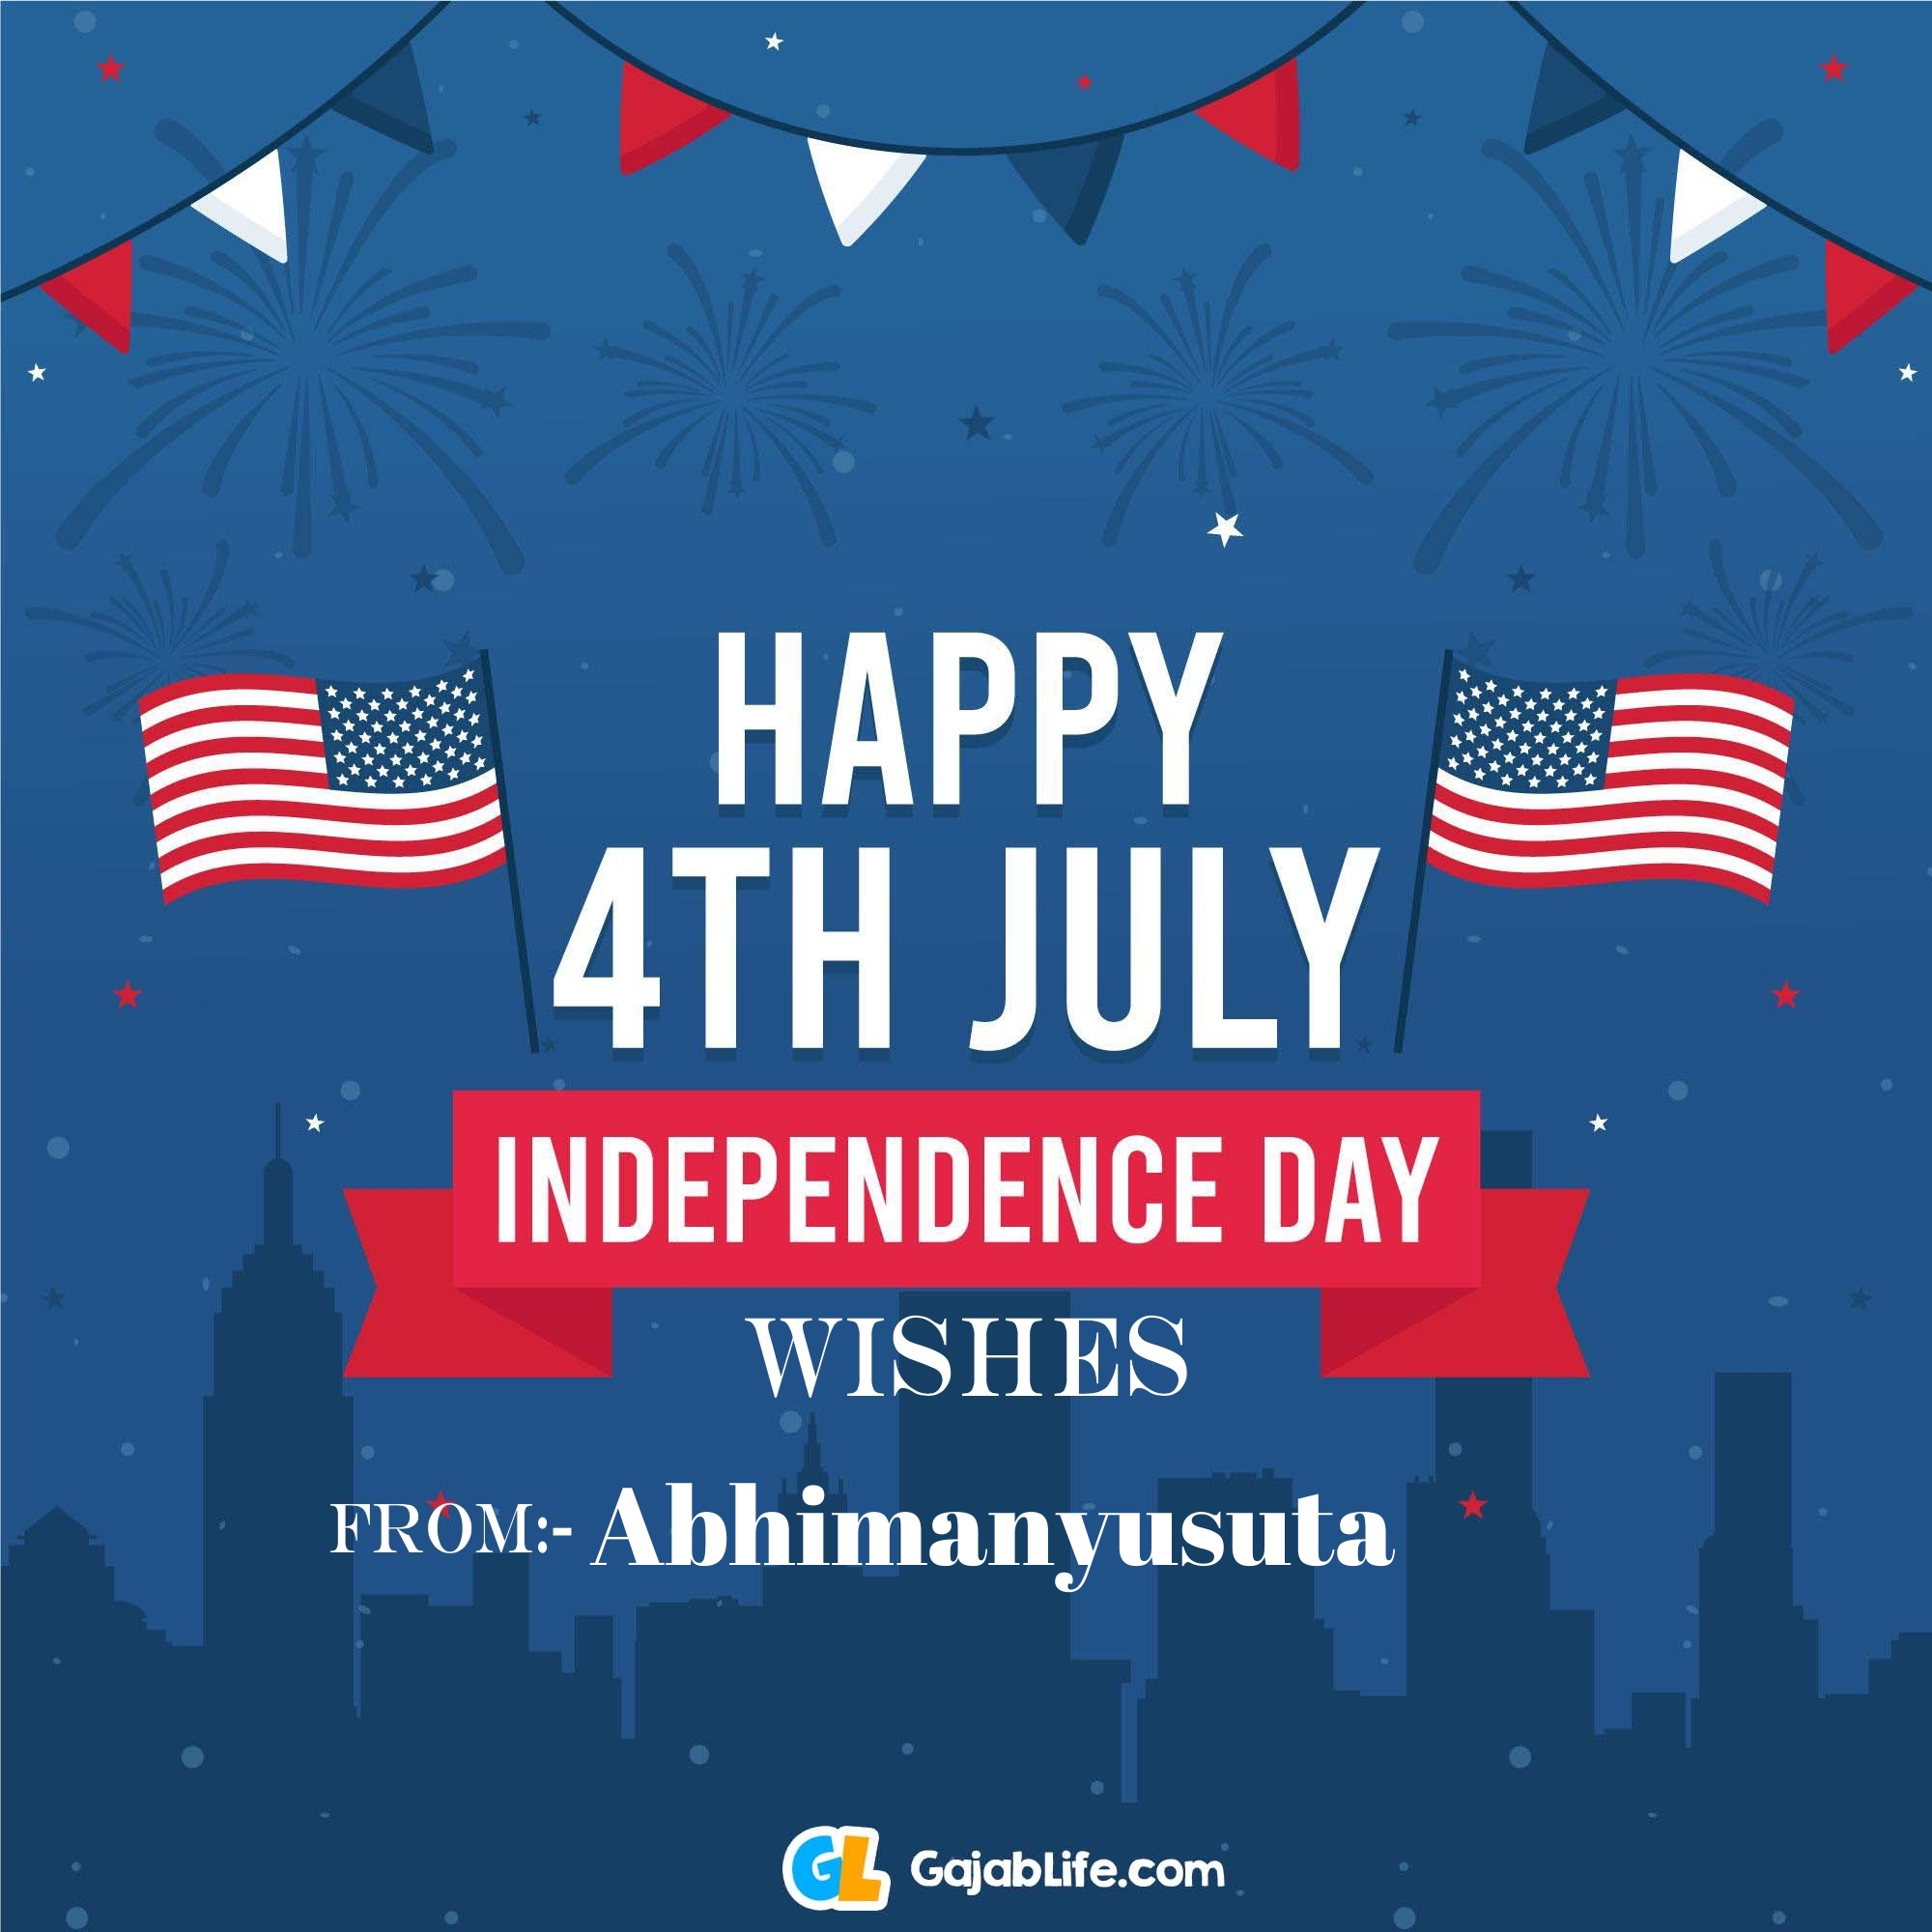 Abhimanyusuta happy independence day united states of america images